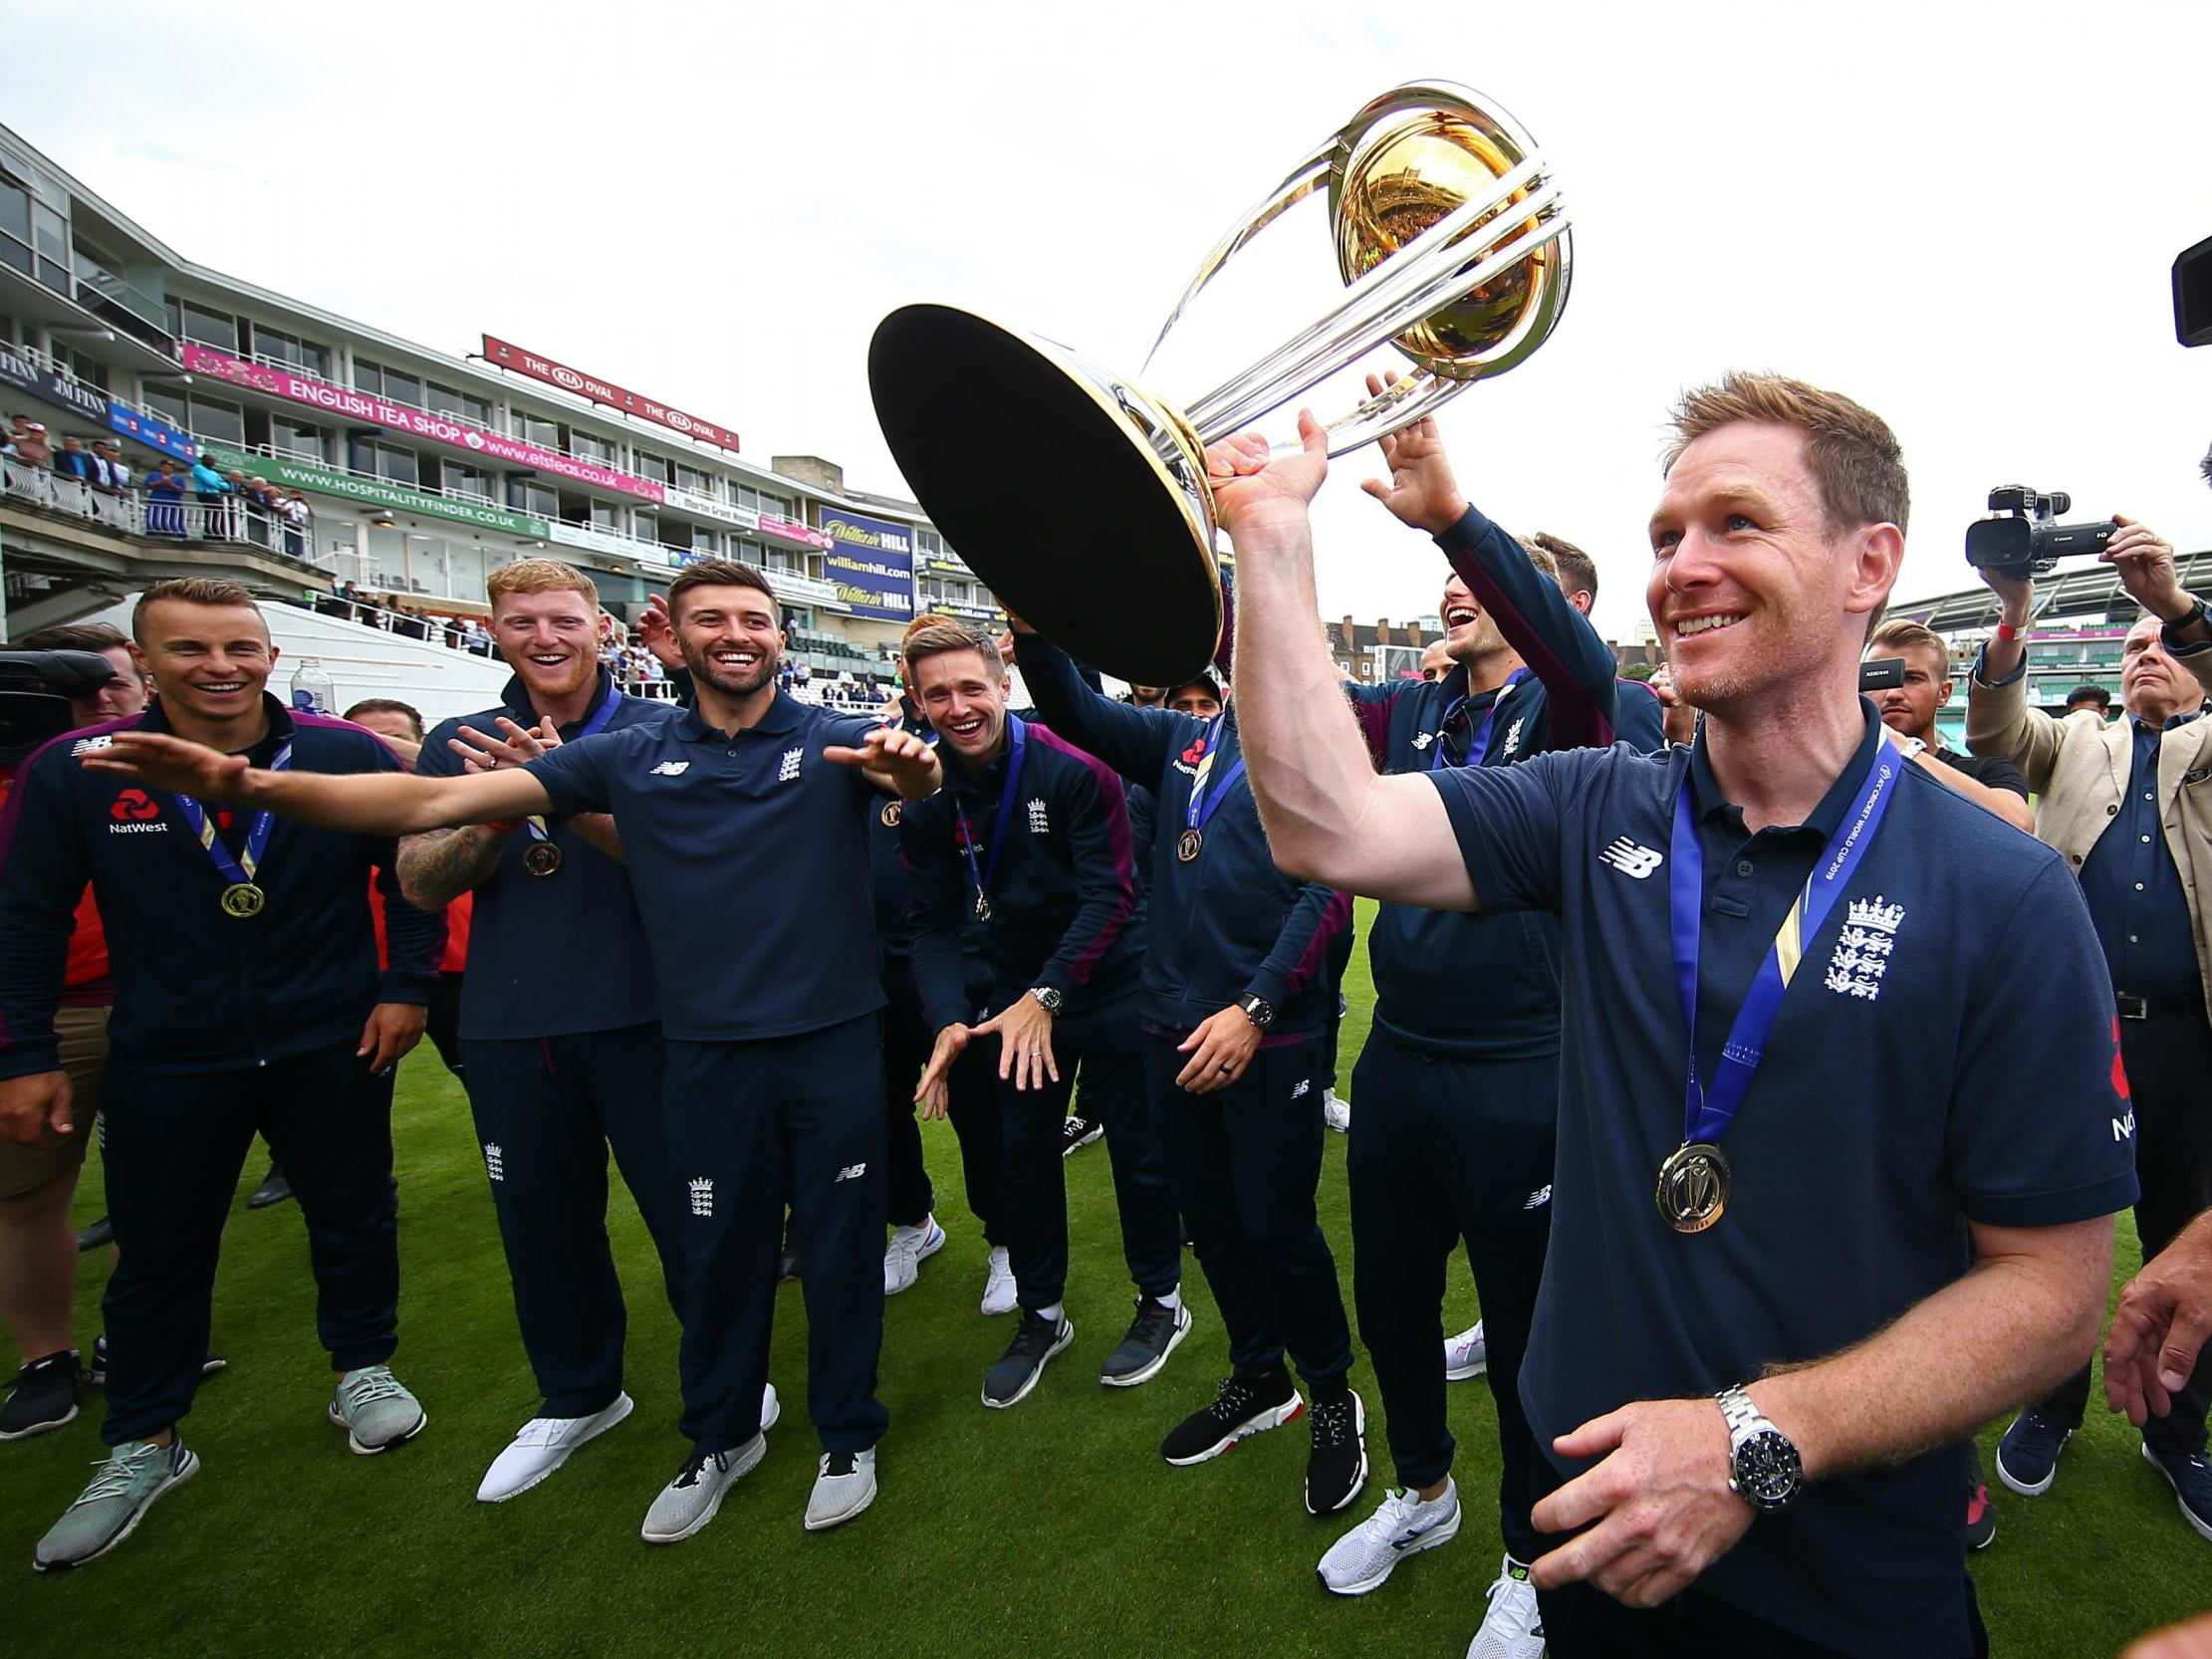 Eoin Morgan has earned the right to step down as England captain after World Cup win, says Andrew Strauss